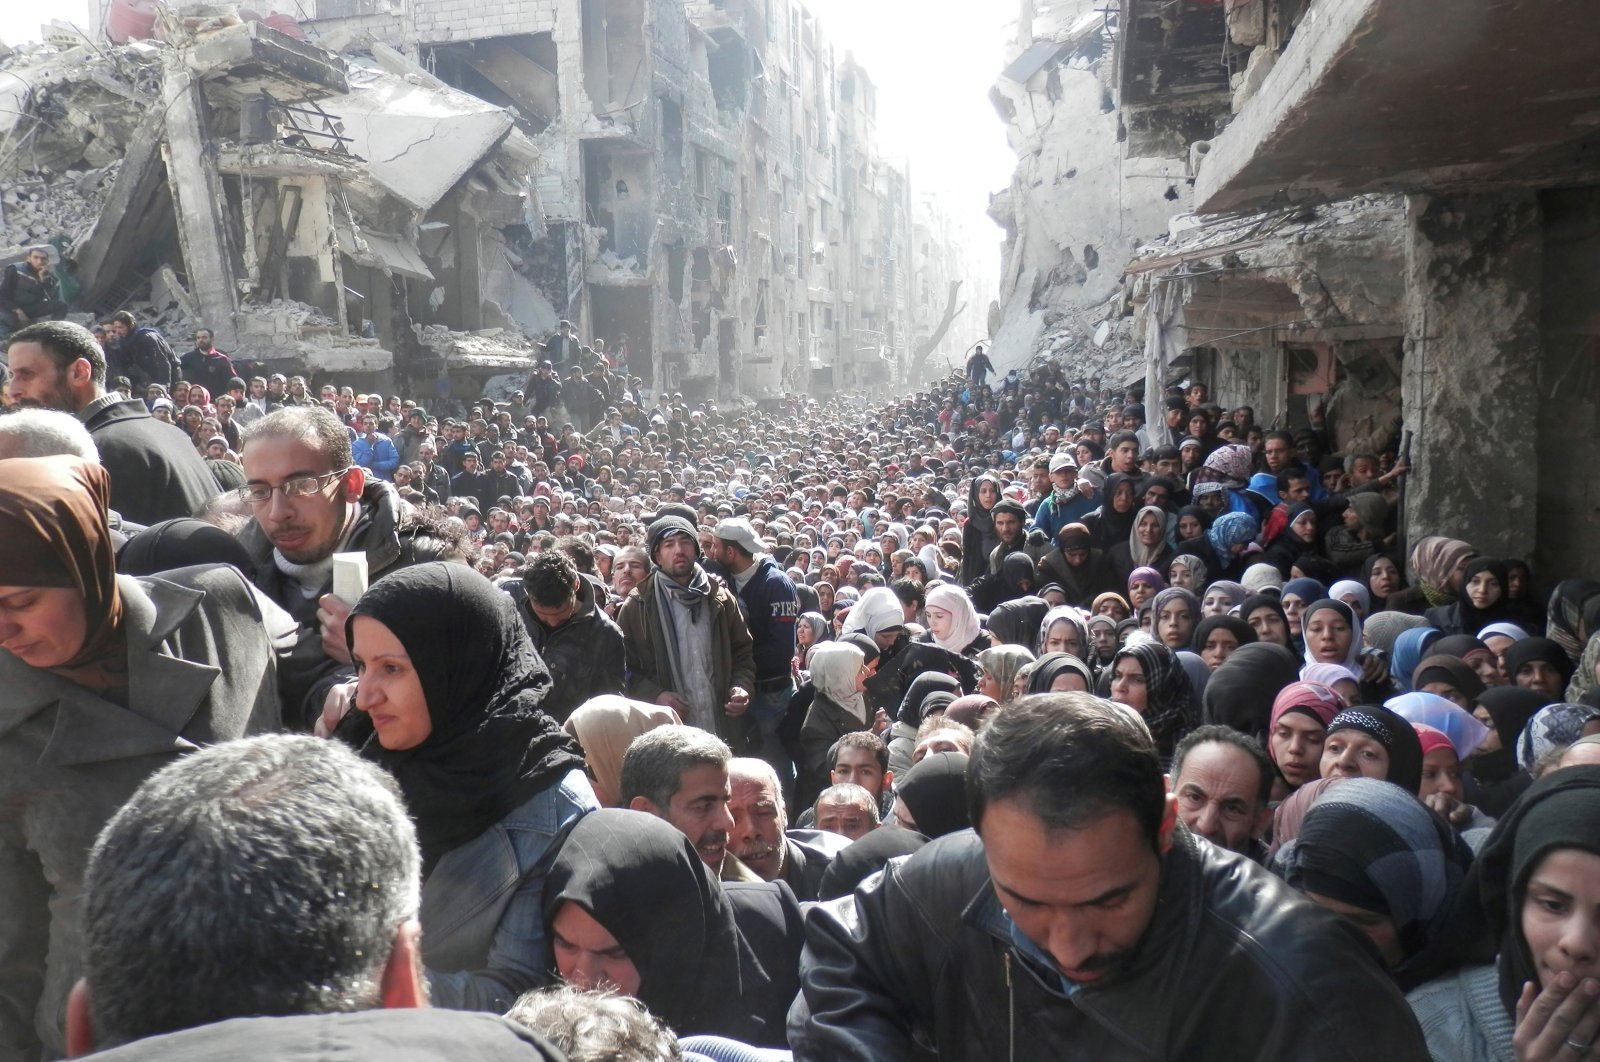 Residents wait to receive food aid distributed by the U.N. Relief and Works Agency (UNRWA) at the besieged al-Yarmouk camp, south of Damascus, Syria, Jan. 31, 2014. (Reuters Photo)